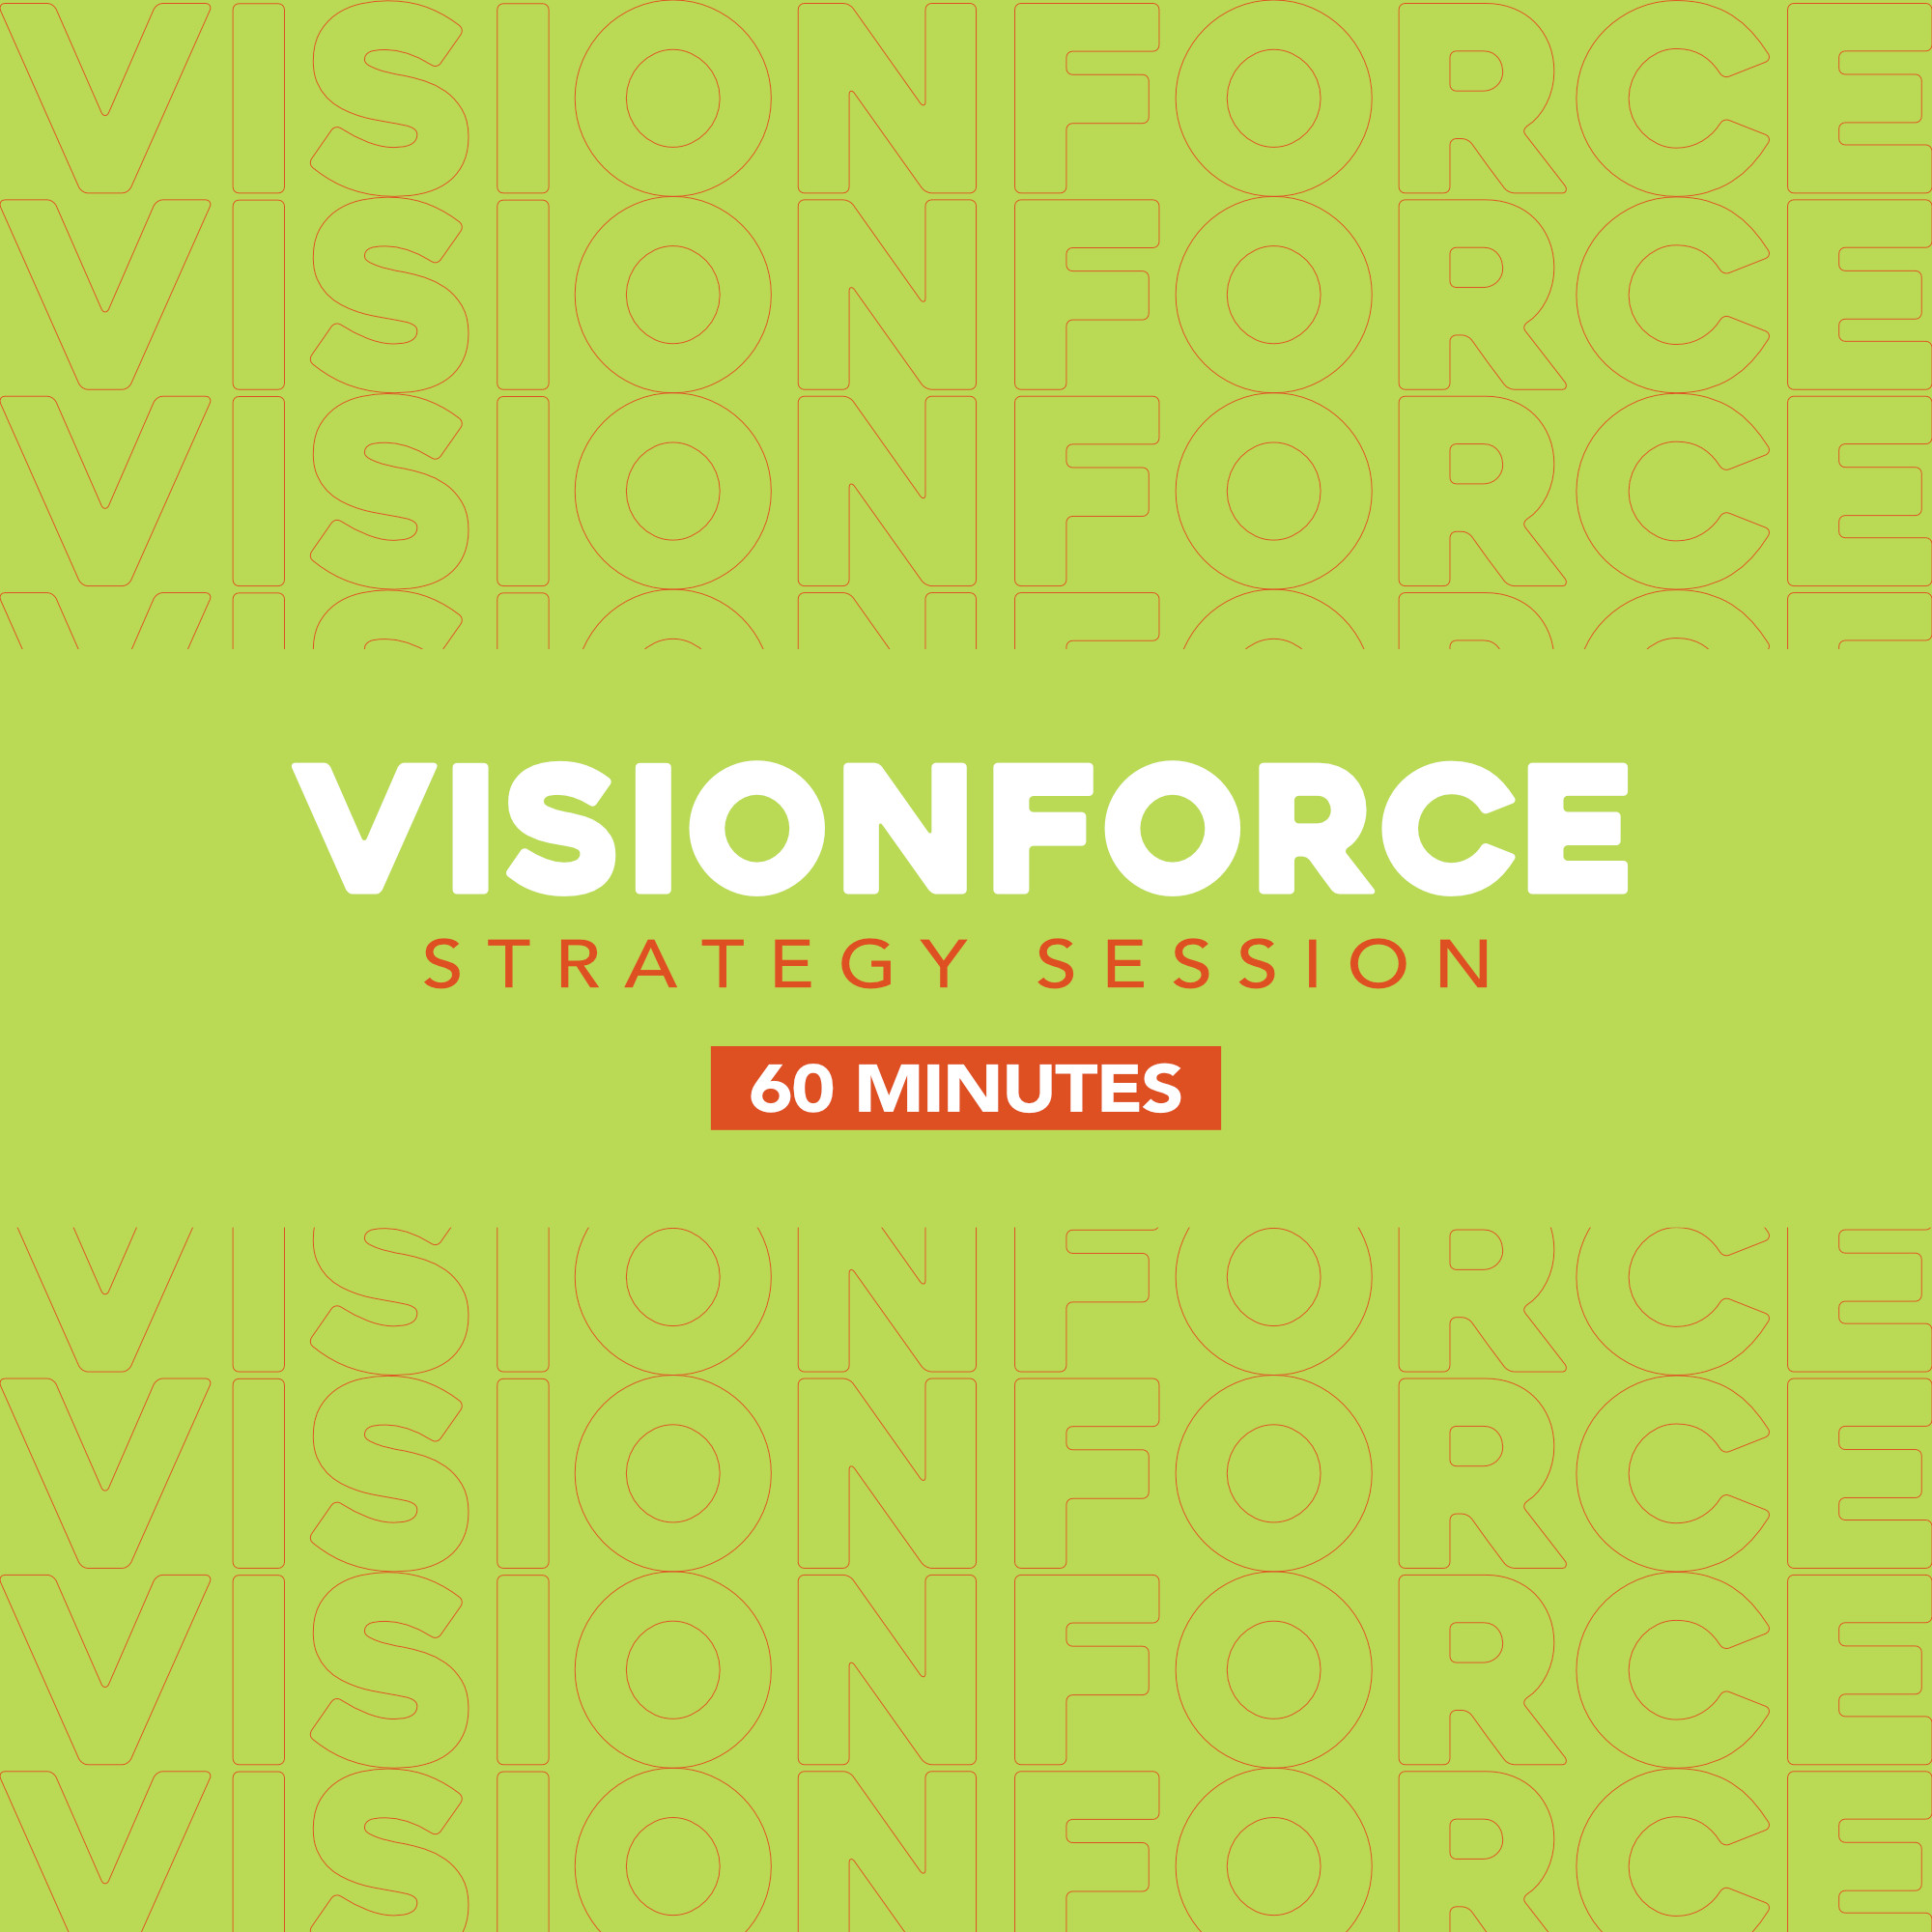 VisionForce 60 min Strategy Session